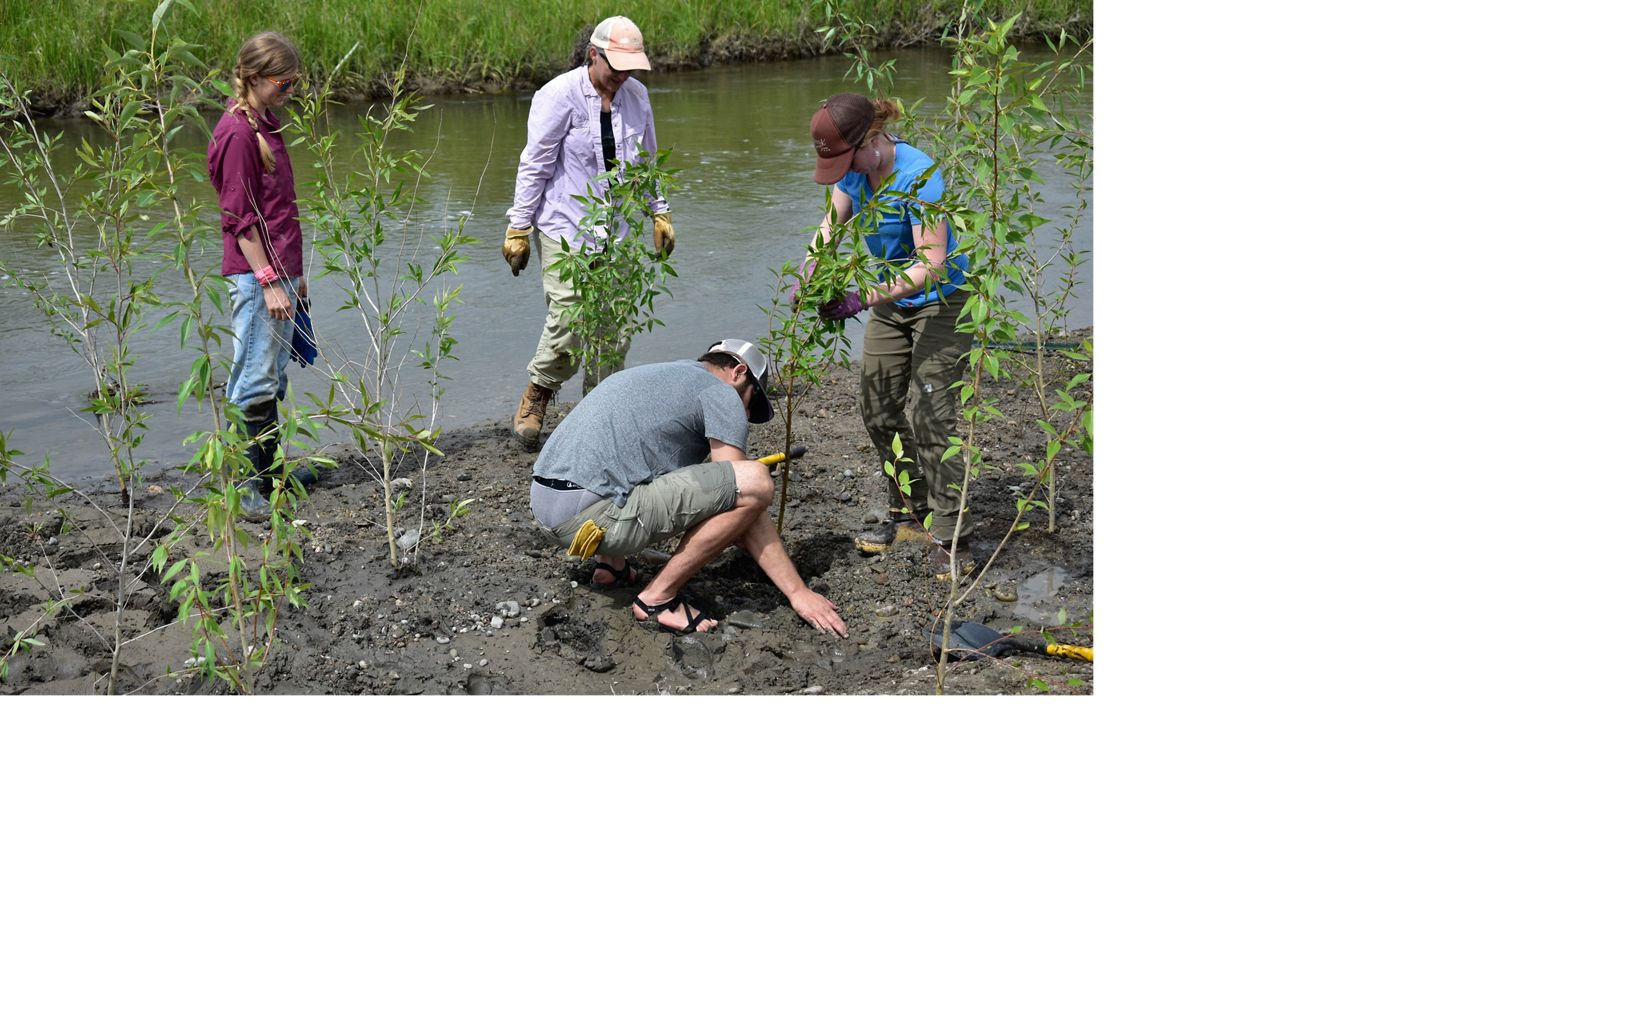 Planting willows on newly aligned Ruby River. A mix of thousands of small trees and willow stakes are planted to stabilize banks and provide water-cooling shade.